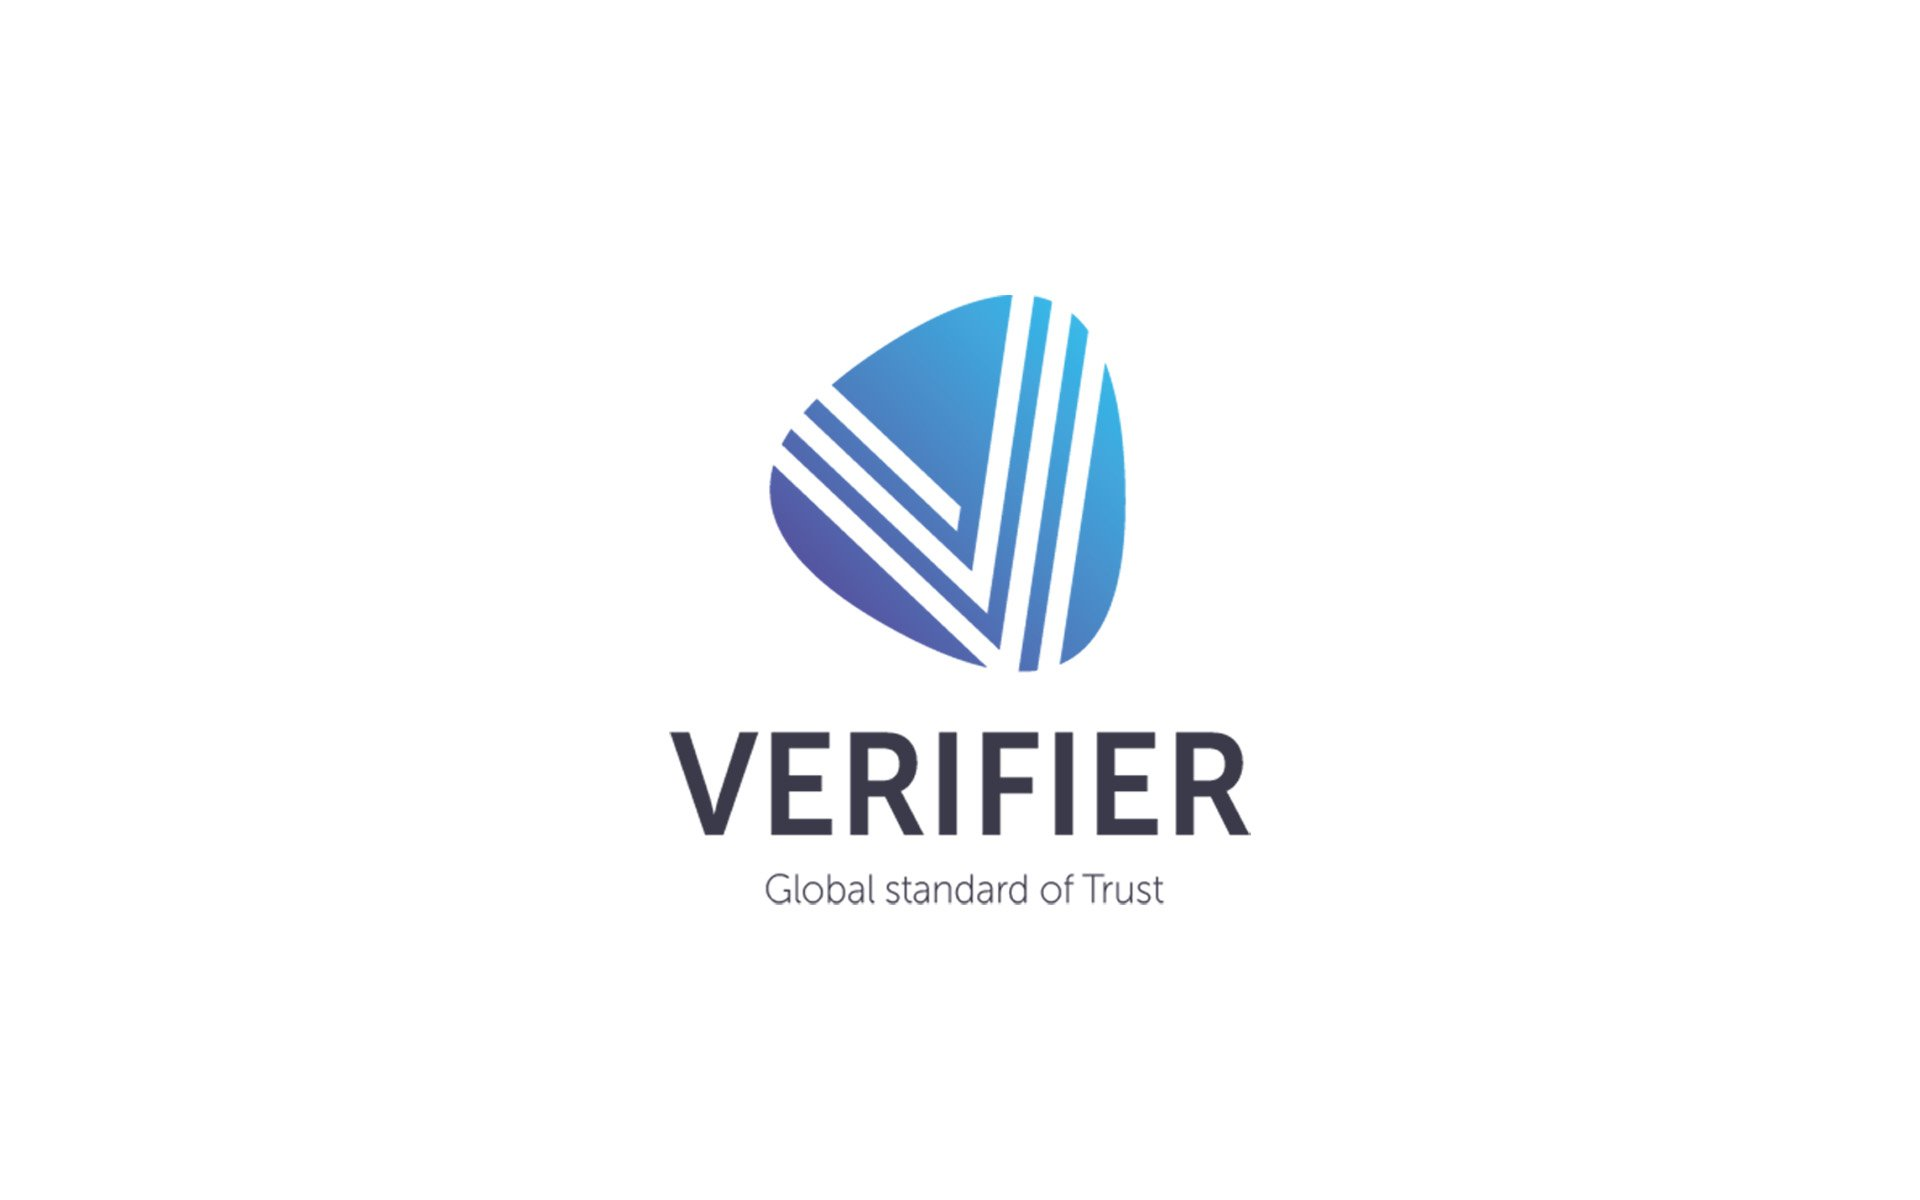 Verifier Will Use Blockchain to Check and Confirm Any Data Without Your Involvement